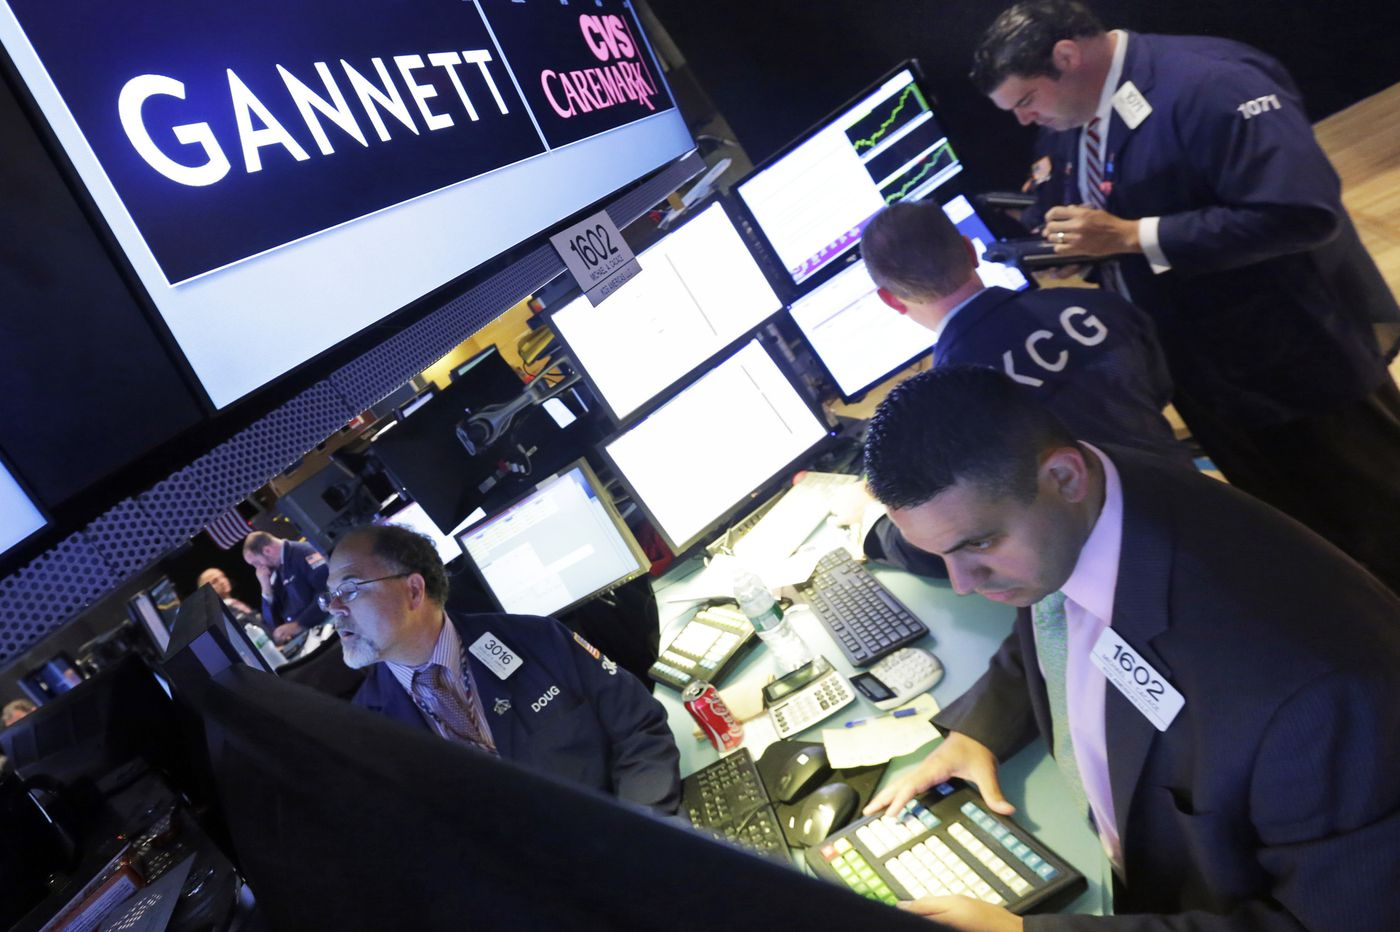 New Media buys Gannett for $1.4 billion to form local news giant